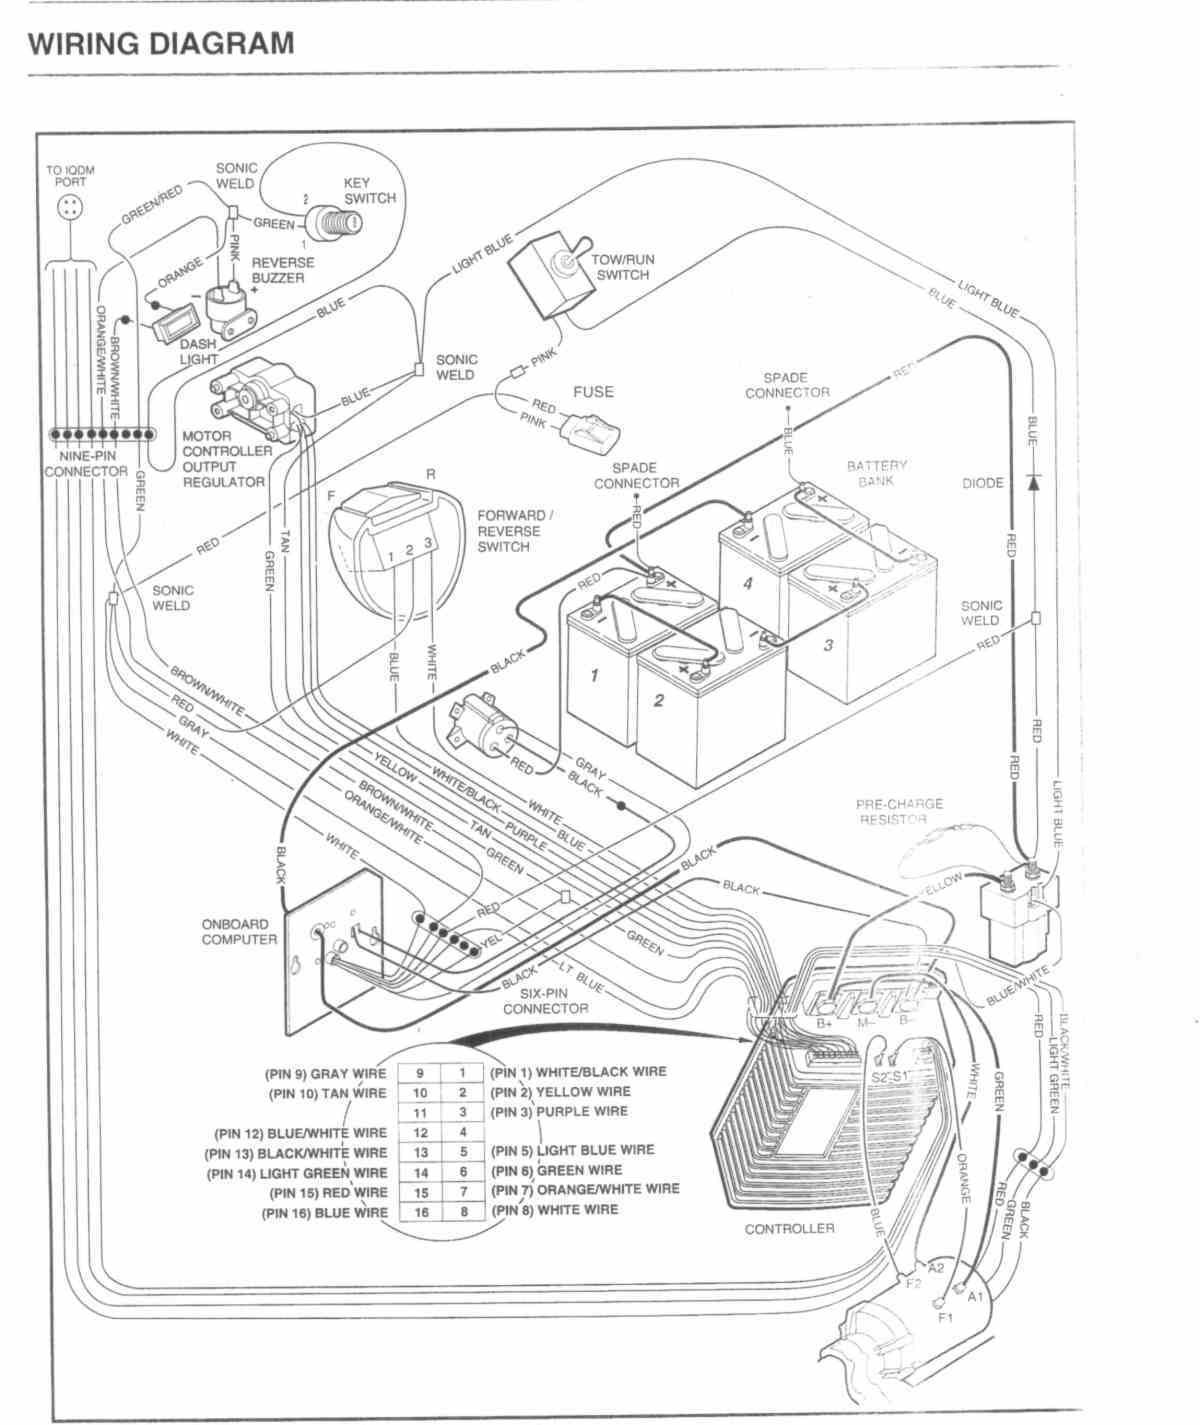 hight resolution of related with ezgo golf cart forward reverse switch wiring diagram